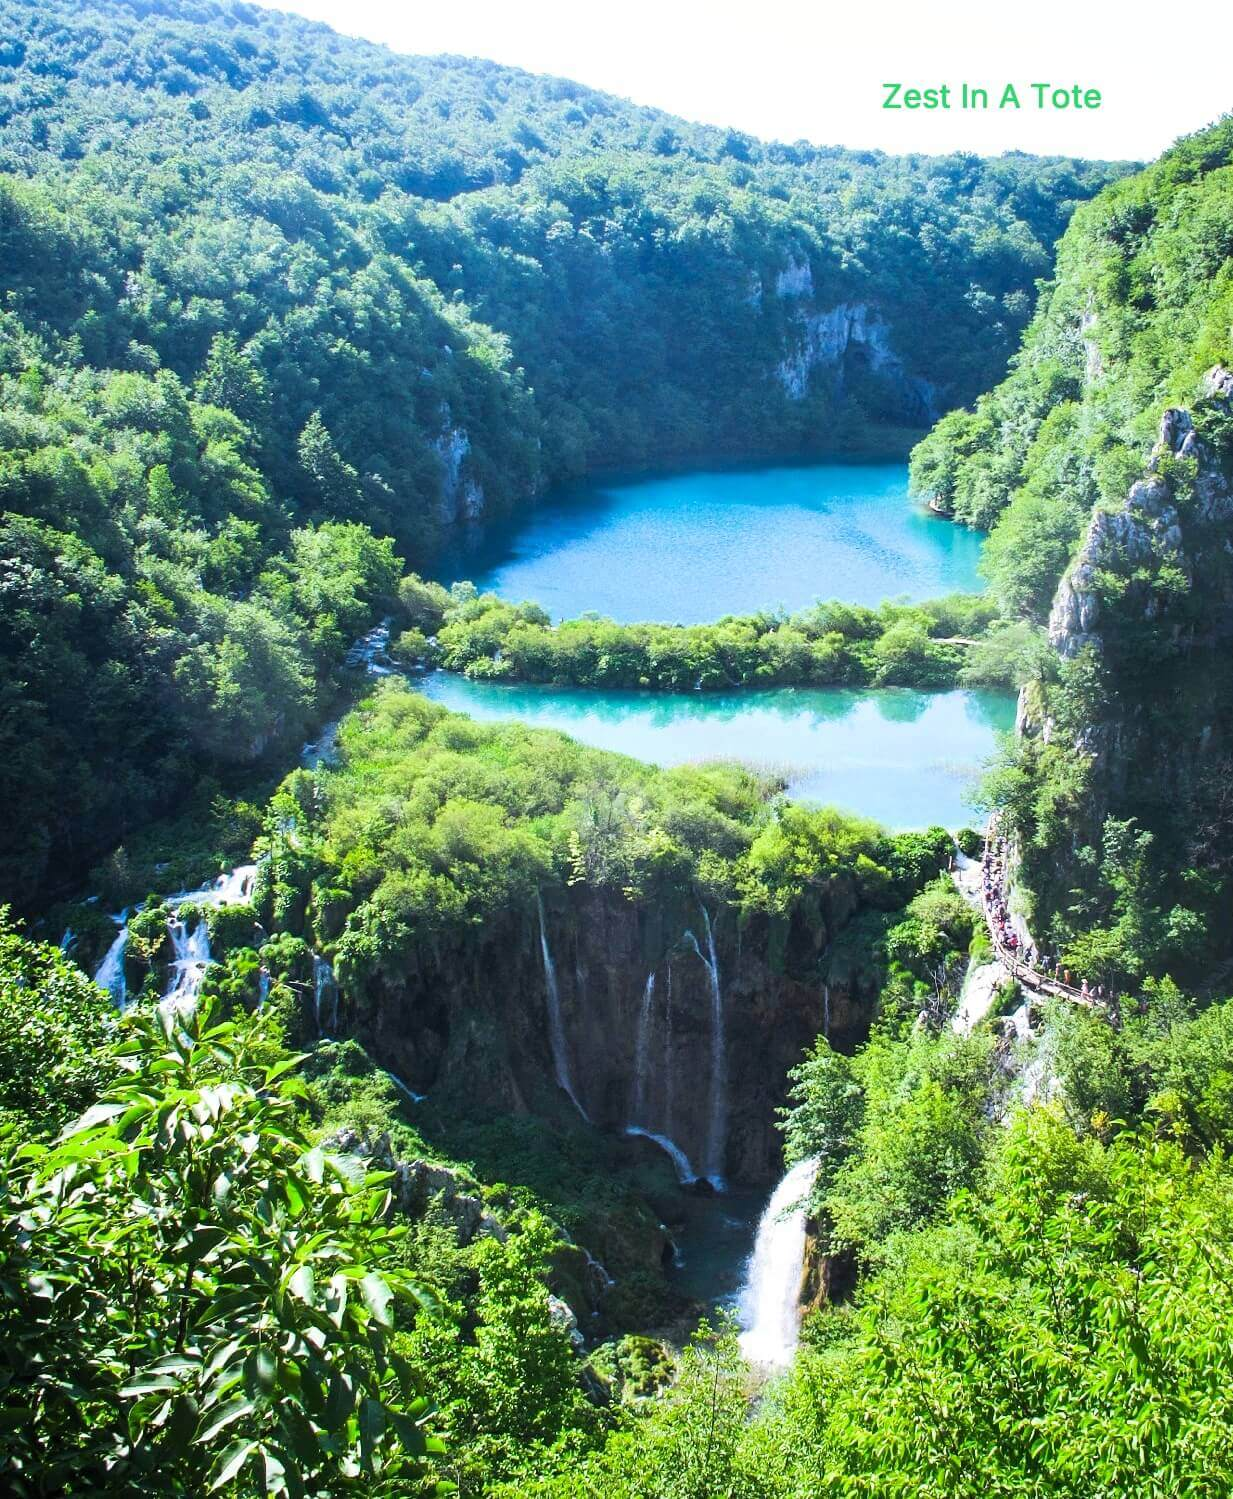 Tips to reach viewpoint for Plitvice Lakes